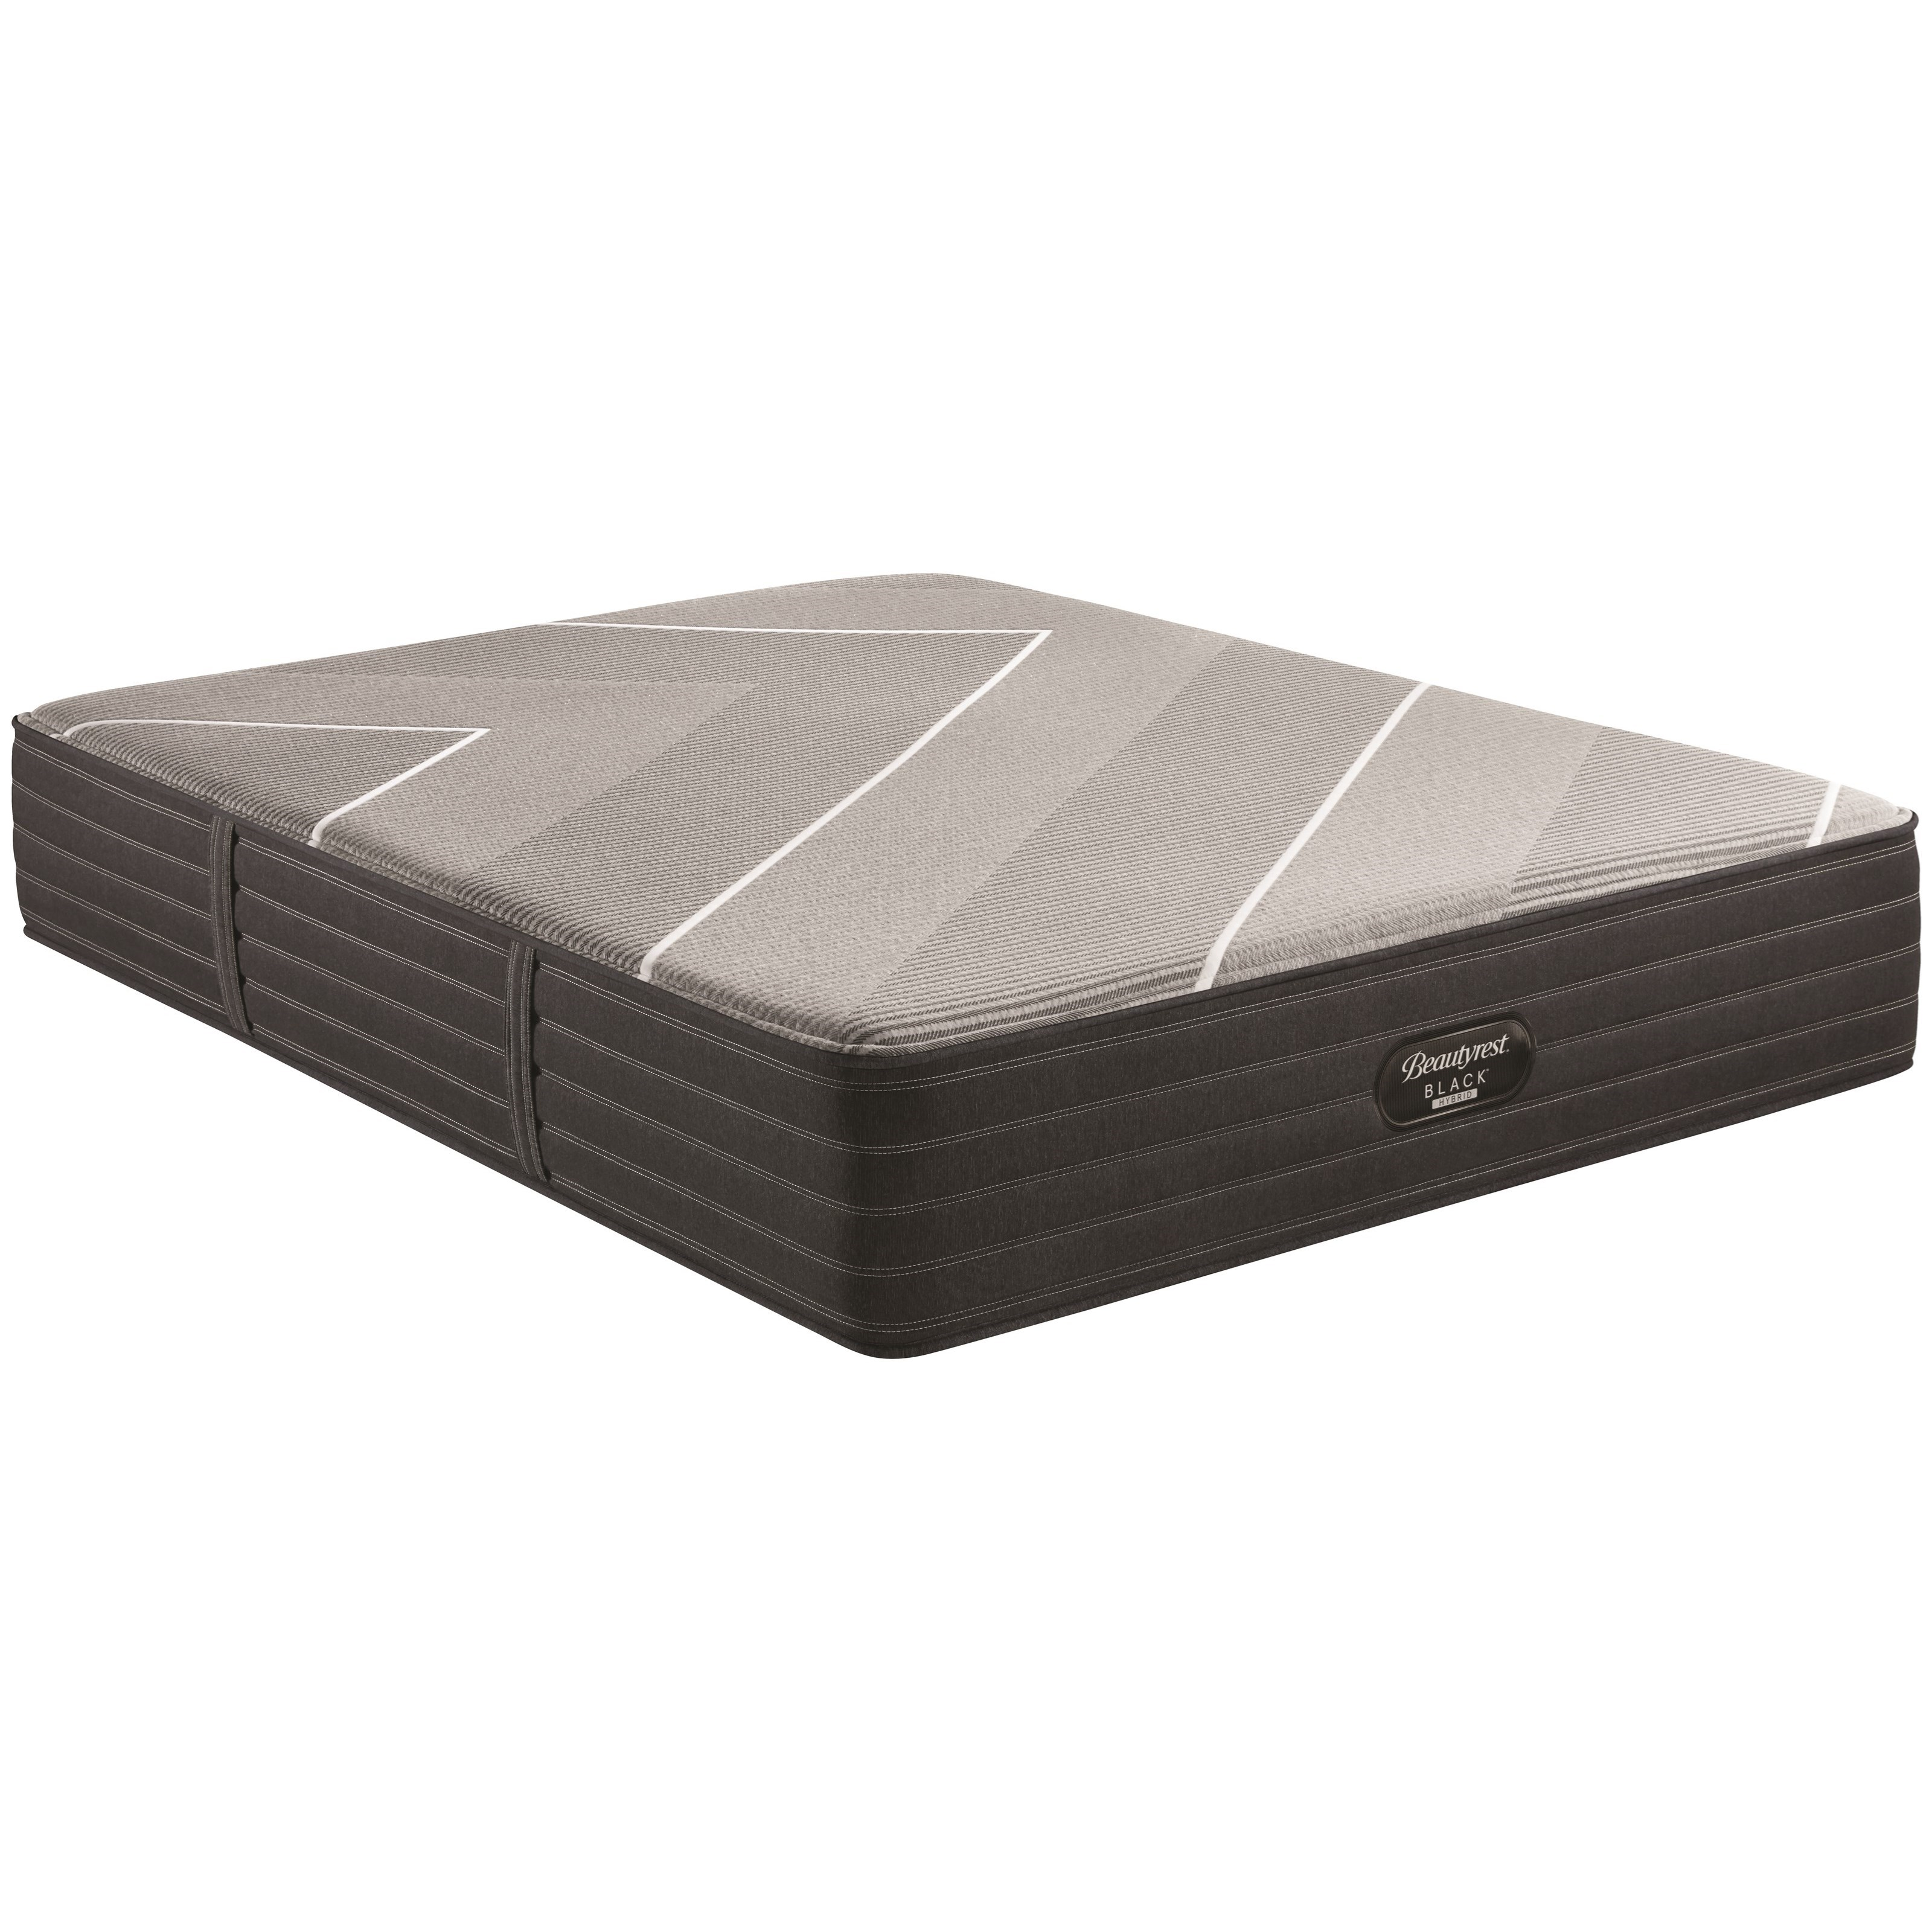 "King 13 1/2"" Plush Hybrid Mattress"